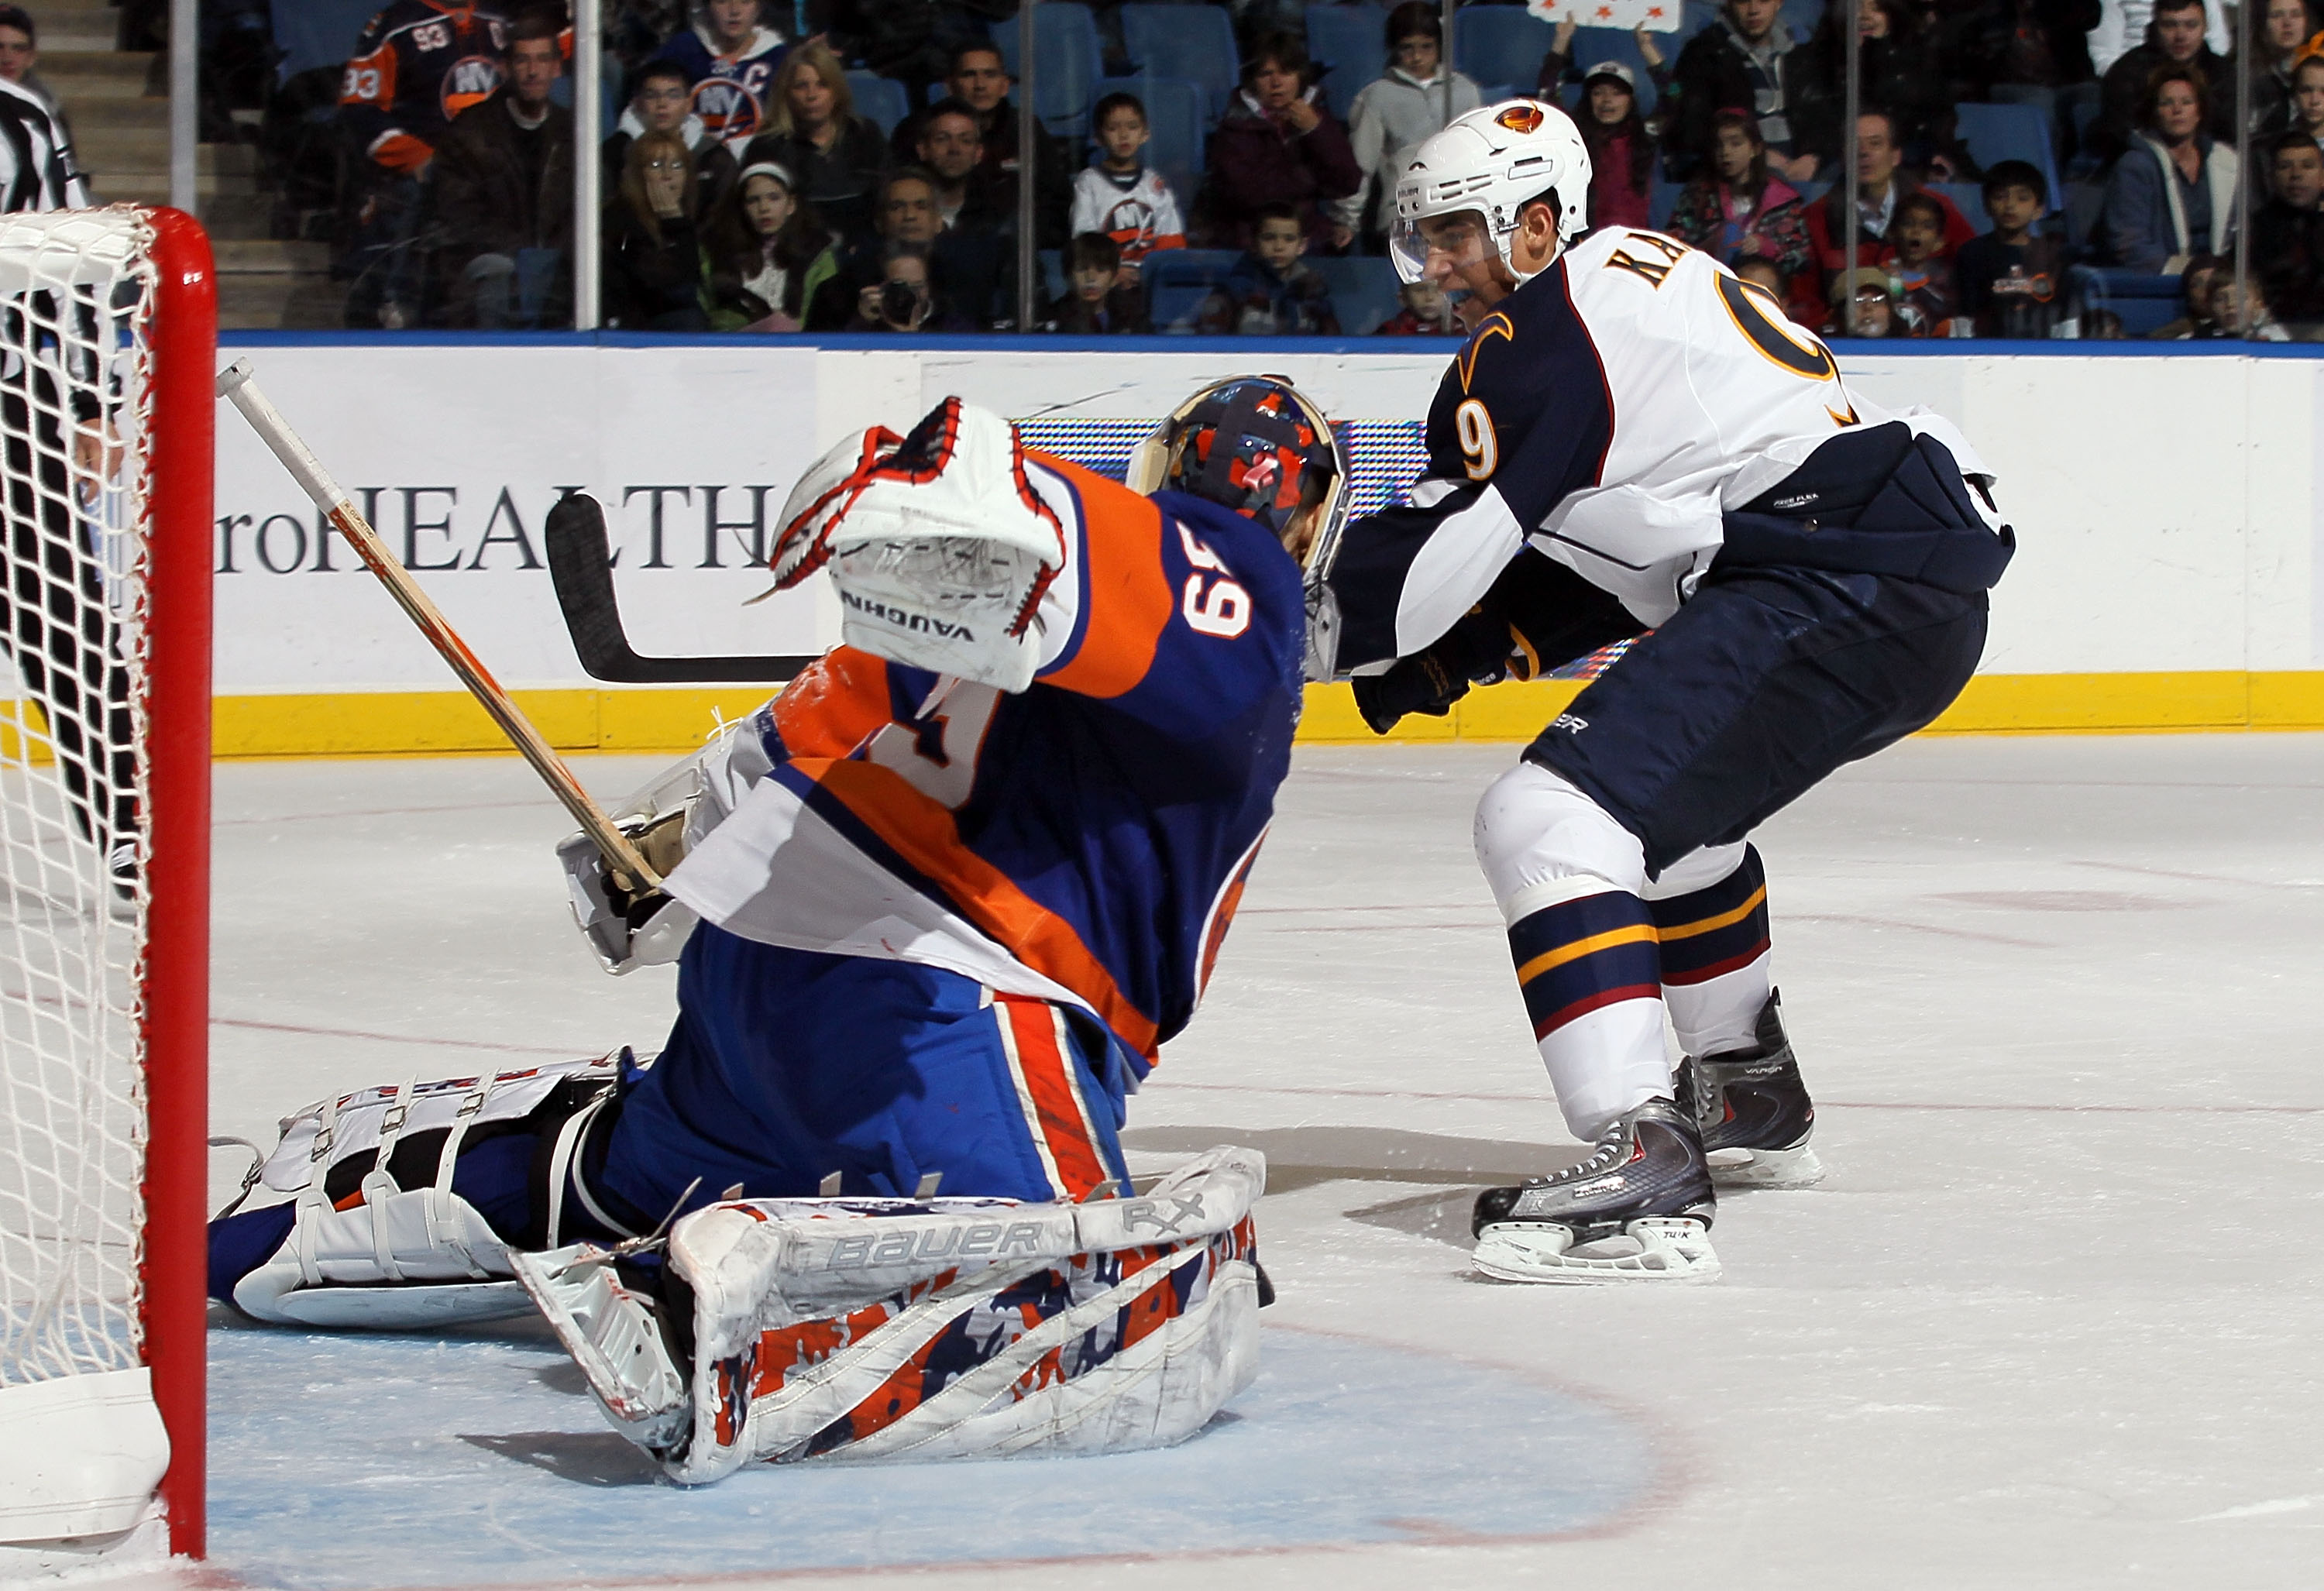 UNIONDALE, NY - DECEMBER 11:  Rick DiPietro #39 of the New York Islanders makes a penalty shot save against Evander Kane #9 of the Atlanta Thrashers during the third period on December 11, 2010 at Nassau Coliseum in Uniondale, New York. The Thrashers defe